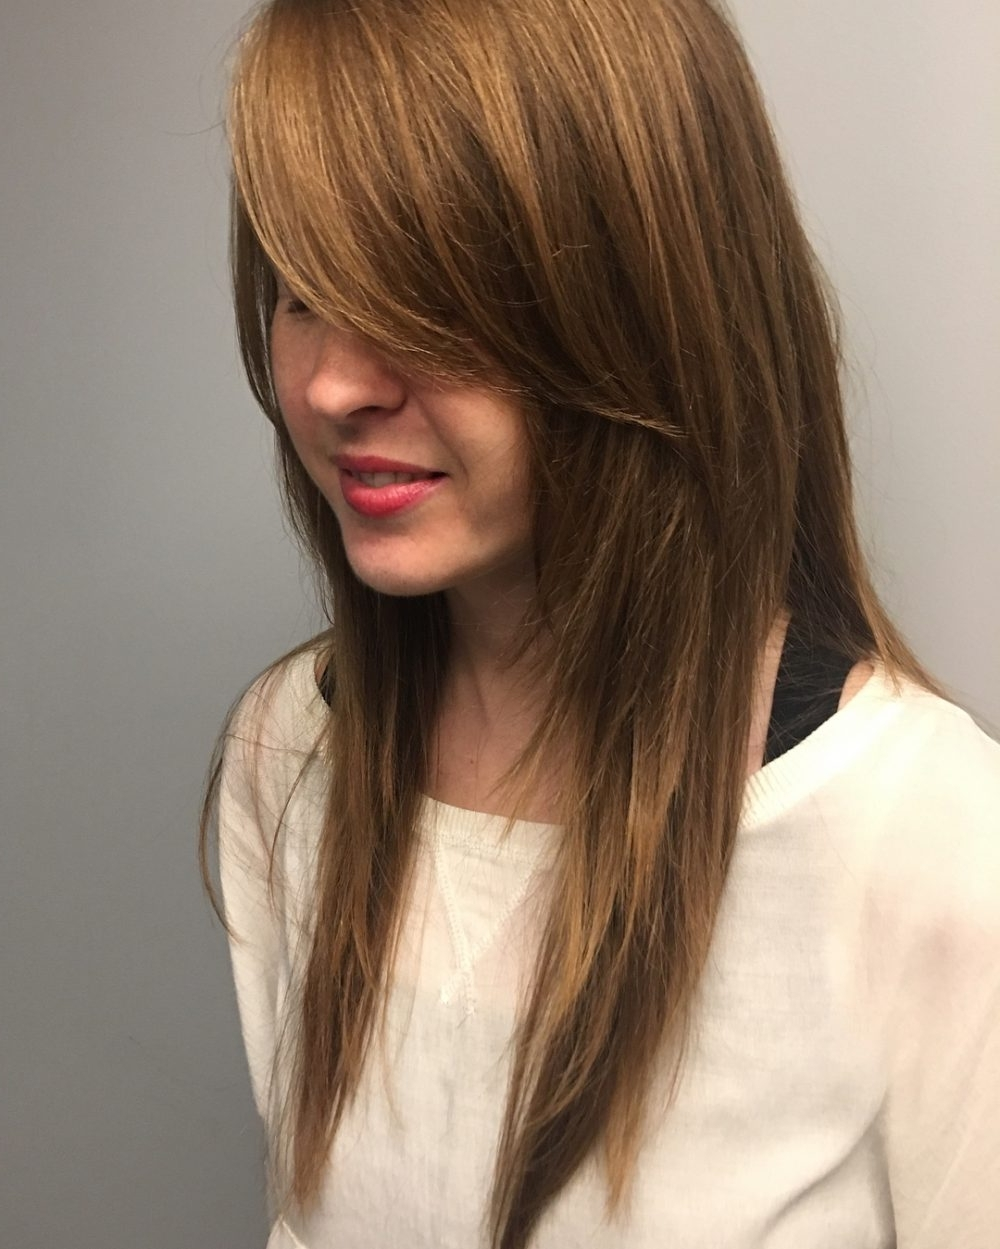 26 Hottest Long Shag Haircut Ideas That Are Trending For 2018 Pertaining To Most Popular Shaggy Bangs Long Hair (View 2 of 15)